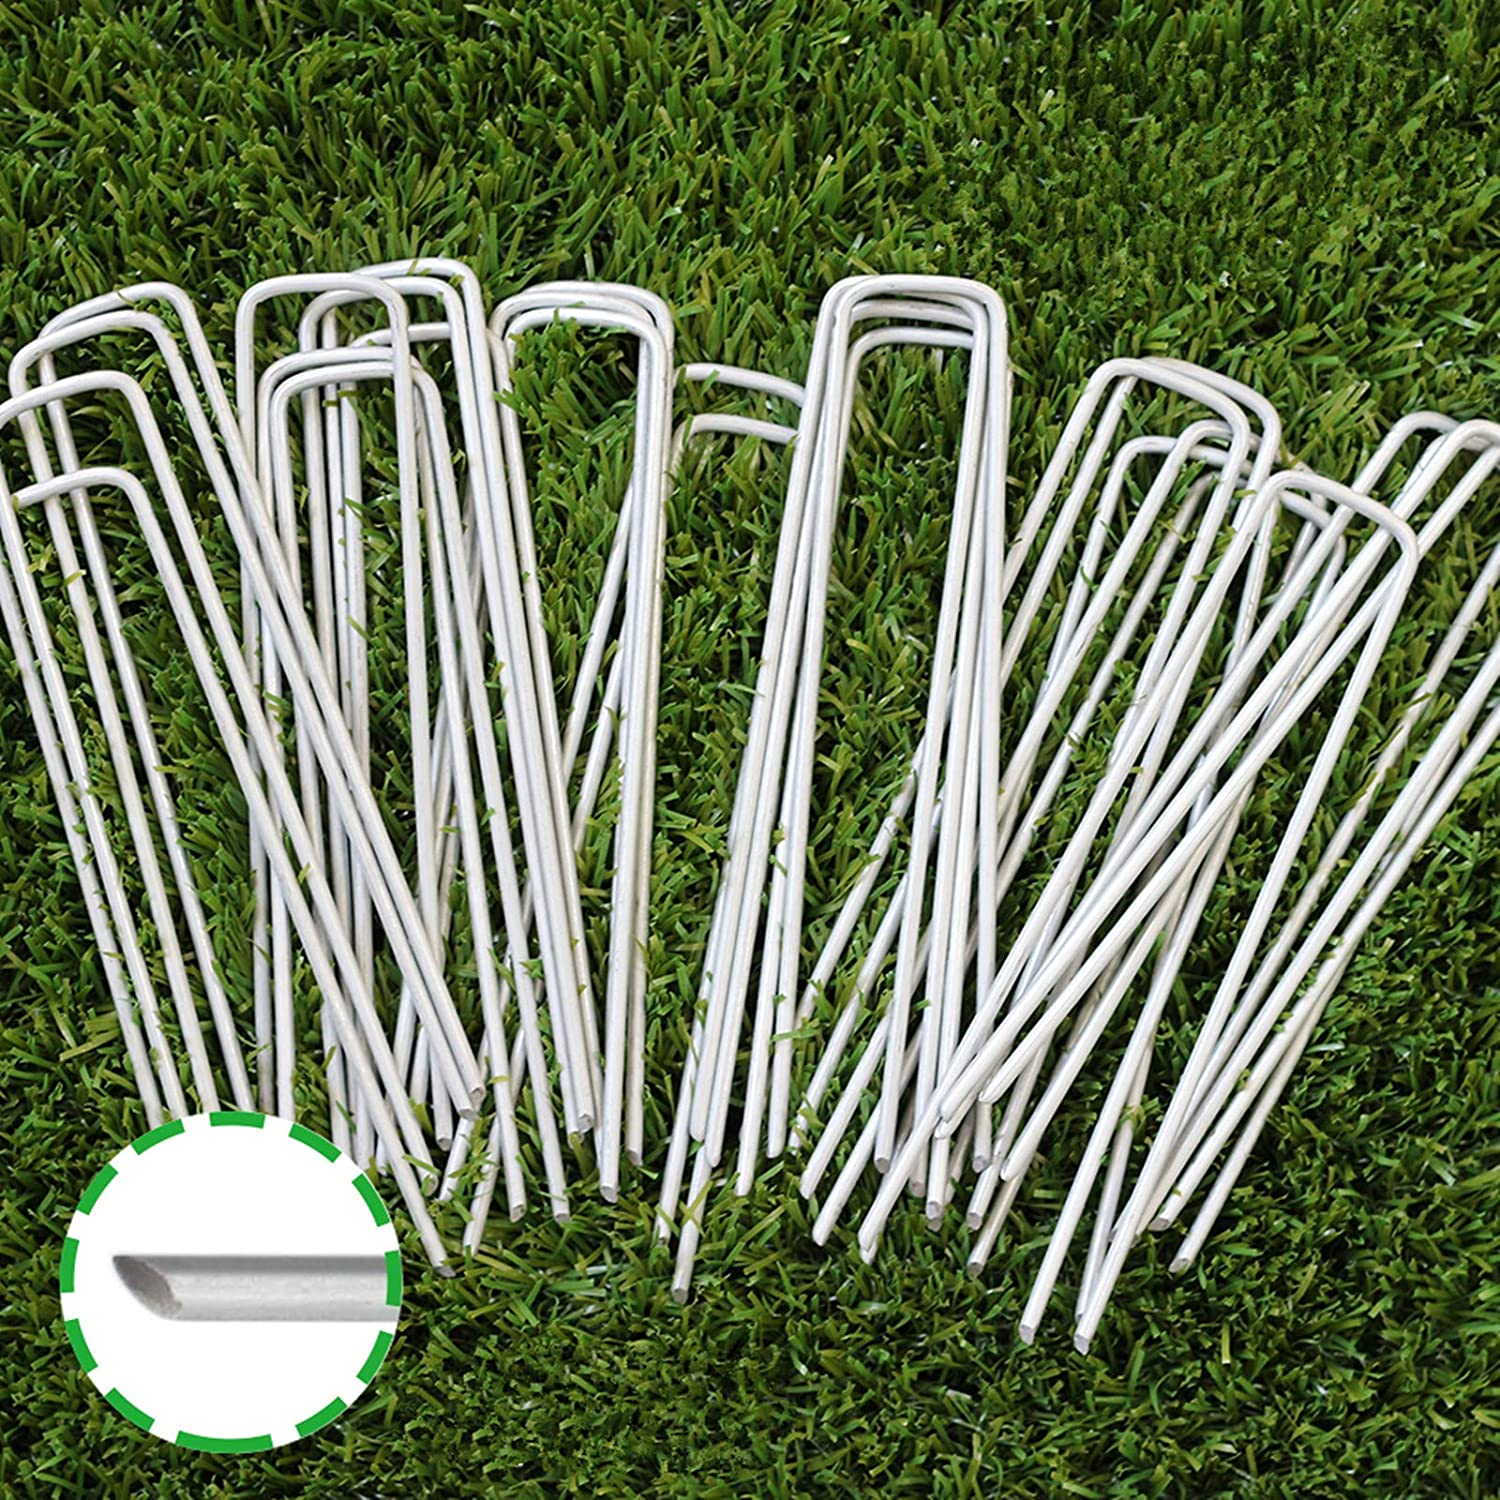 6 Inch Garden Stakes Galvanized Landscape Staples, U-Type Turf Staples for Artificial Grass, Rust Proof Sod Pins Stakes for Securing Fences Weed Barrier, Outdoor Wires Cords Tents Tarps, 100 Pcs